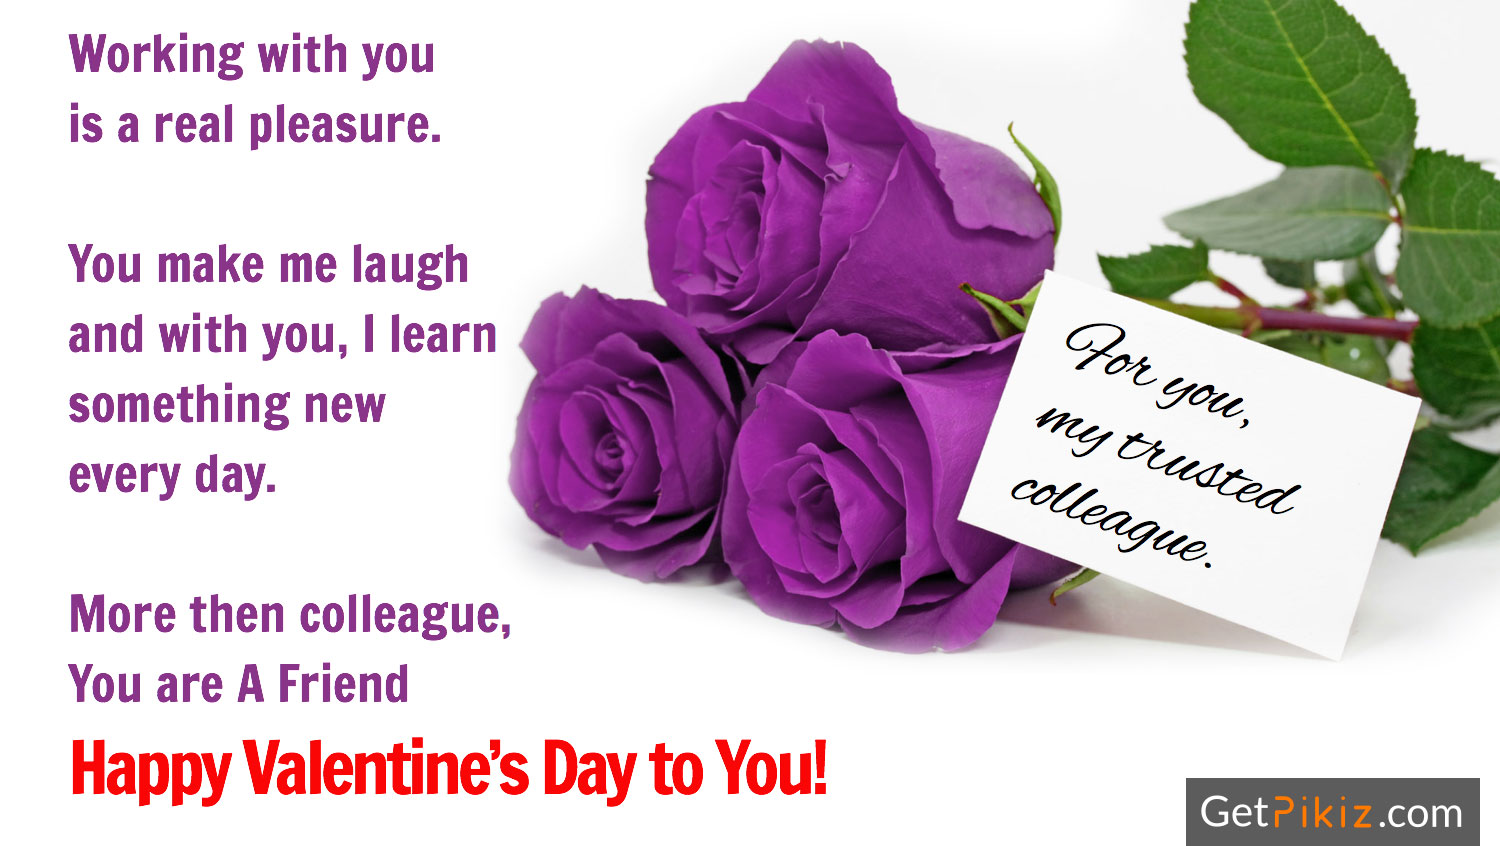 Working with you is a real pleasure. You make me laugh and with you, I learn something new every day. More then colleague, You are A Friend. Happy Valentine's Day to You! For you, my trusted colleague..